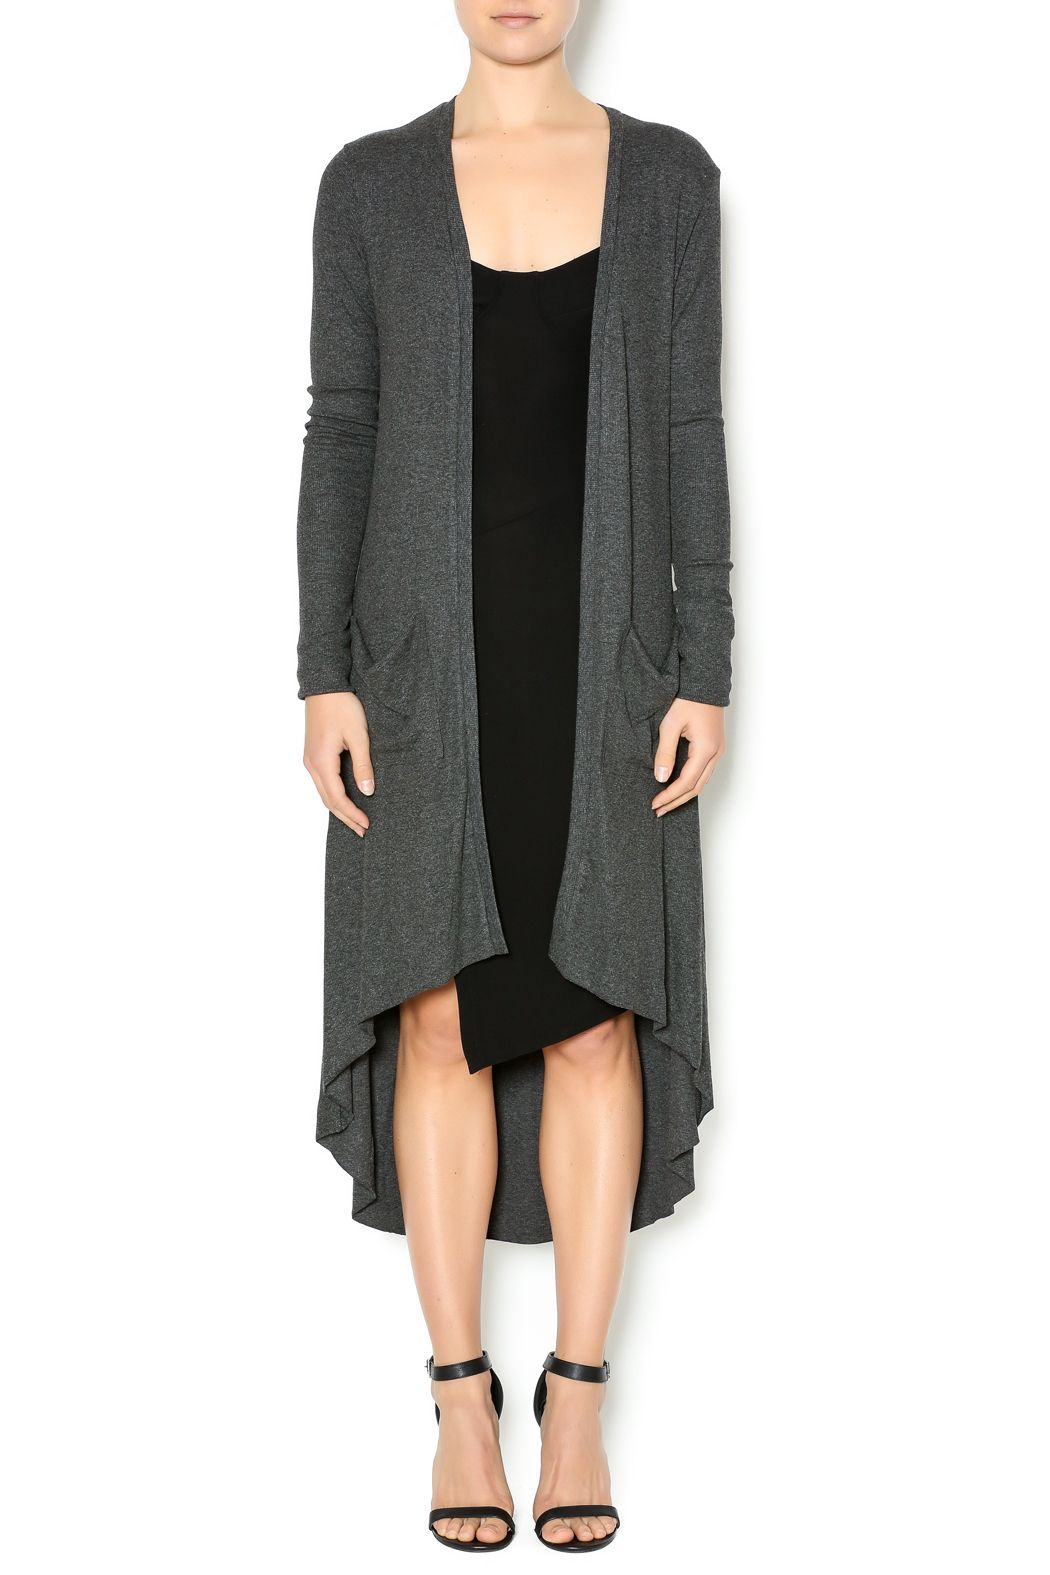 Joah Brown Soleil Cardigan | Products, Clothing and Cardigans